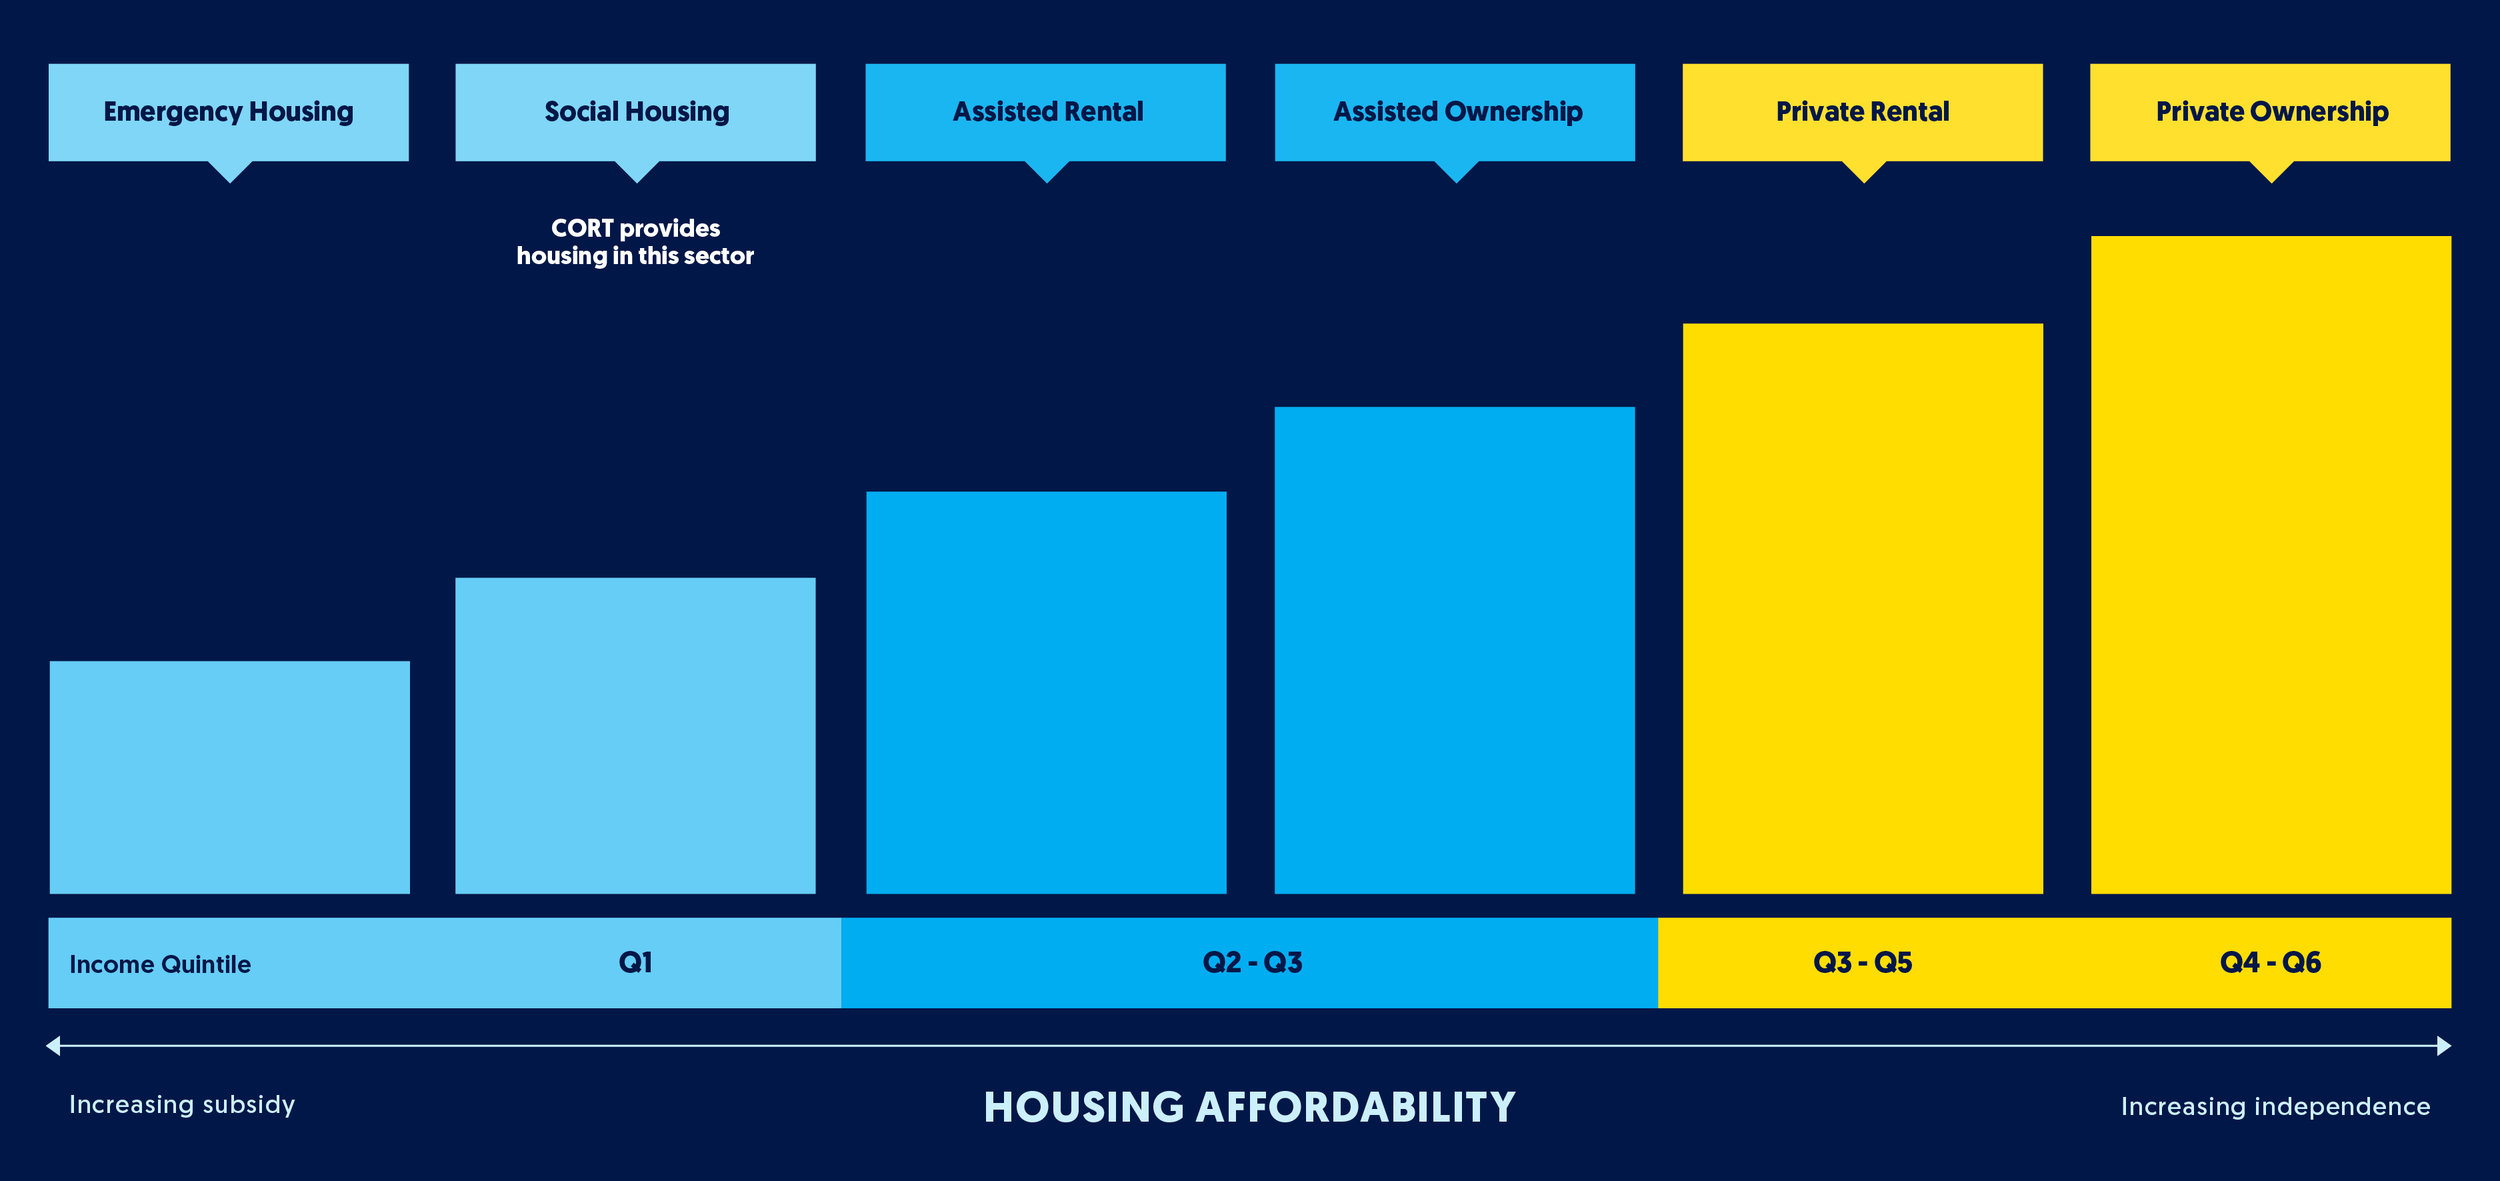 HousingContinuum.jpg